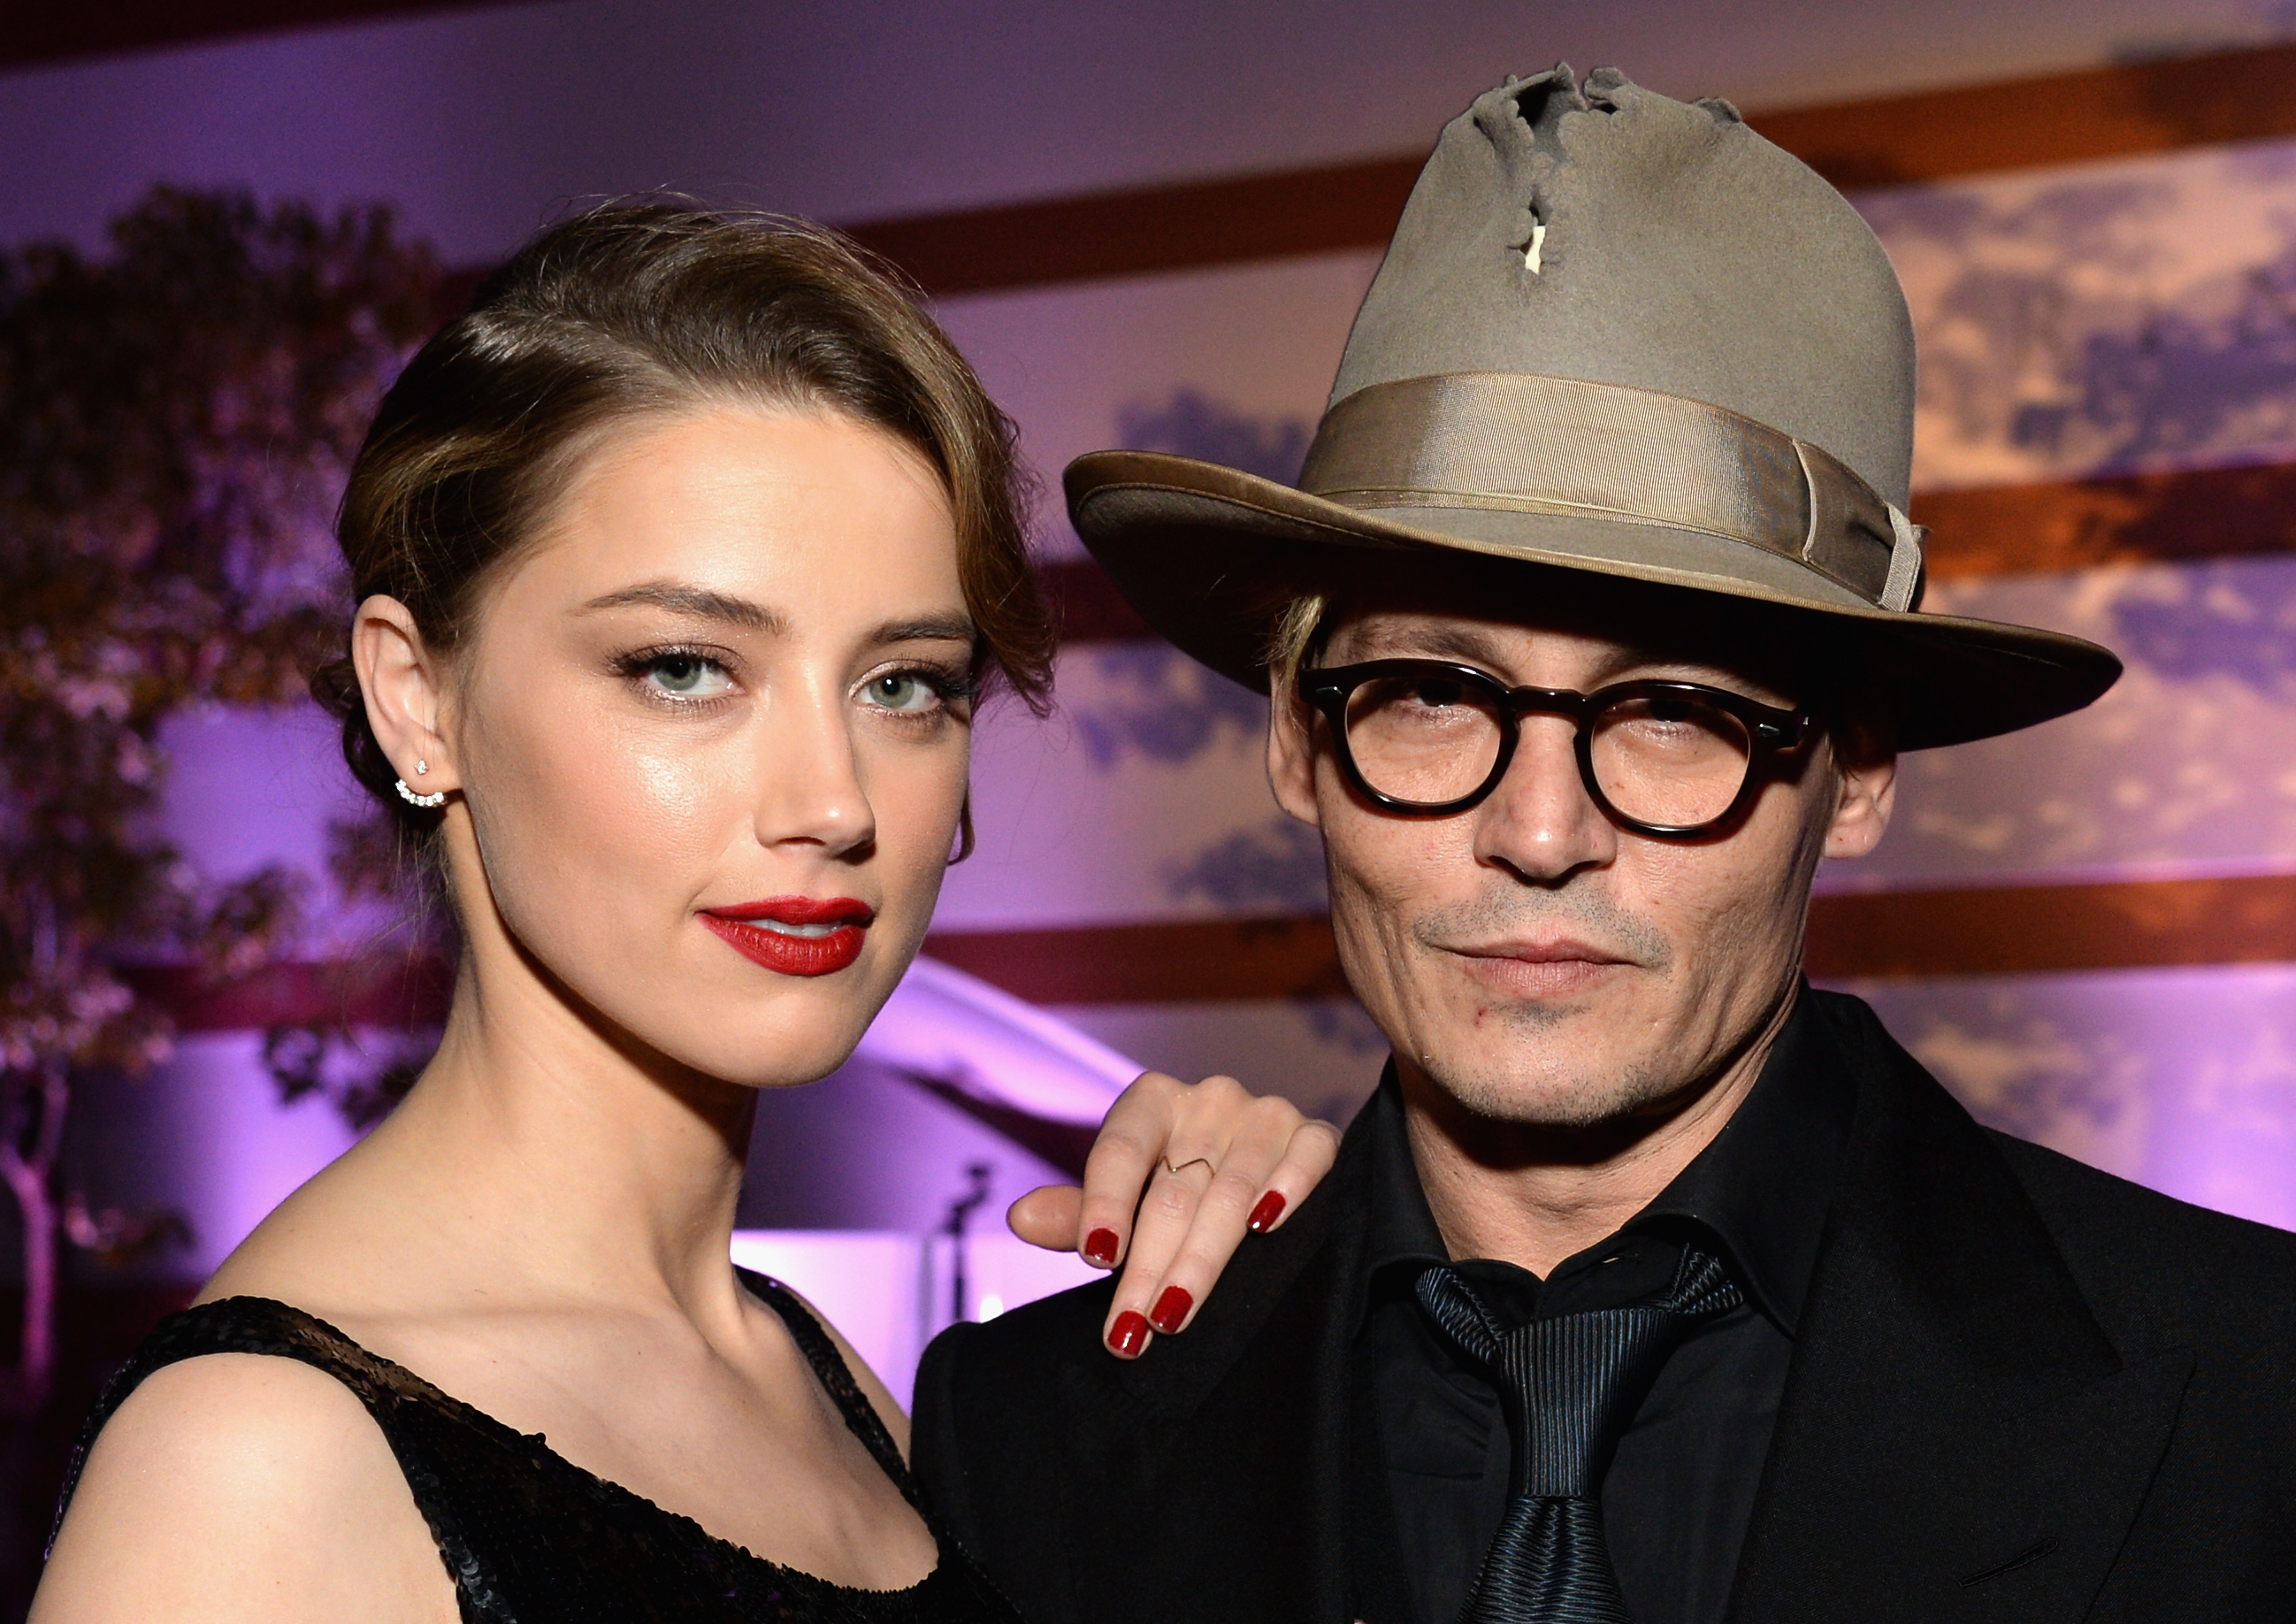 Actors Amber Heard (L) and Johnny Depp attend The Art of Elysium's 7th Annual HEAVEN Gala presented by Mercedes-Benz at Skirball Cultural Center on January 11, 2014 in Los Angeles, California.